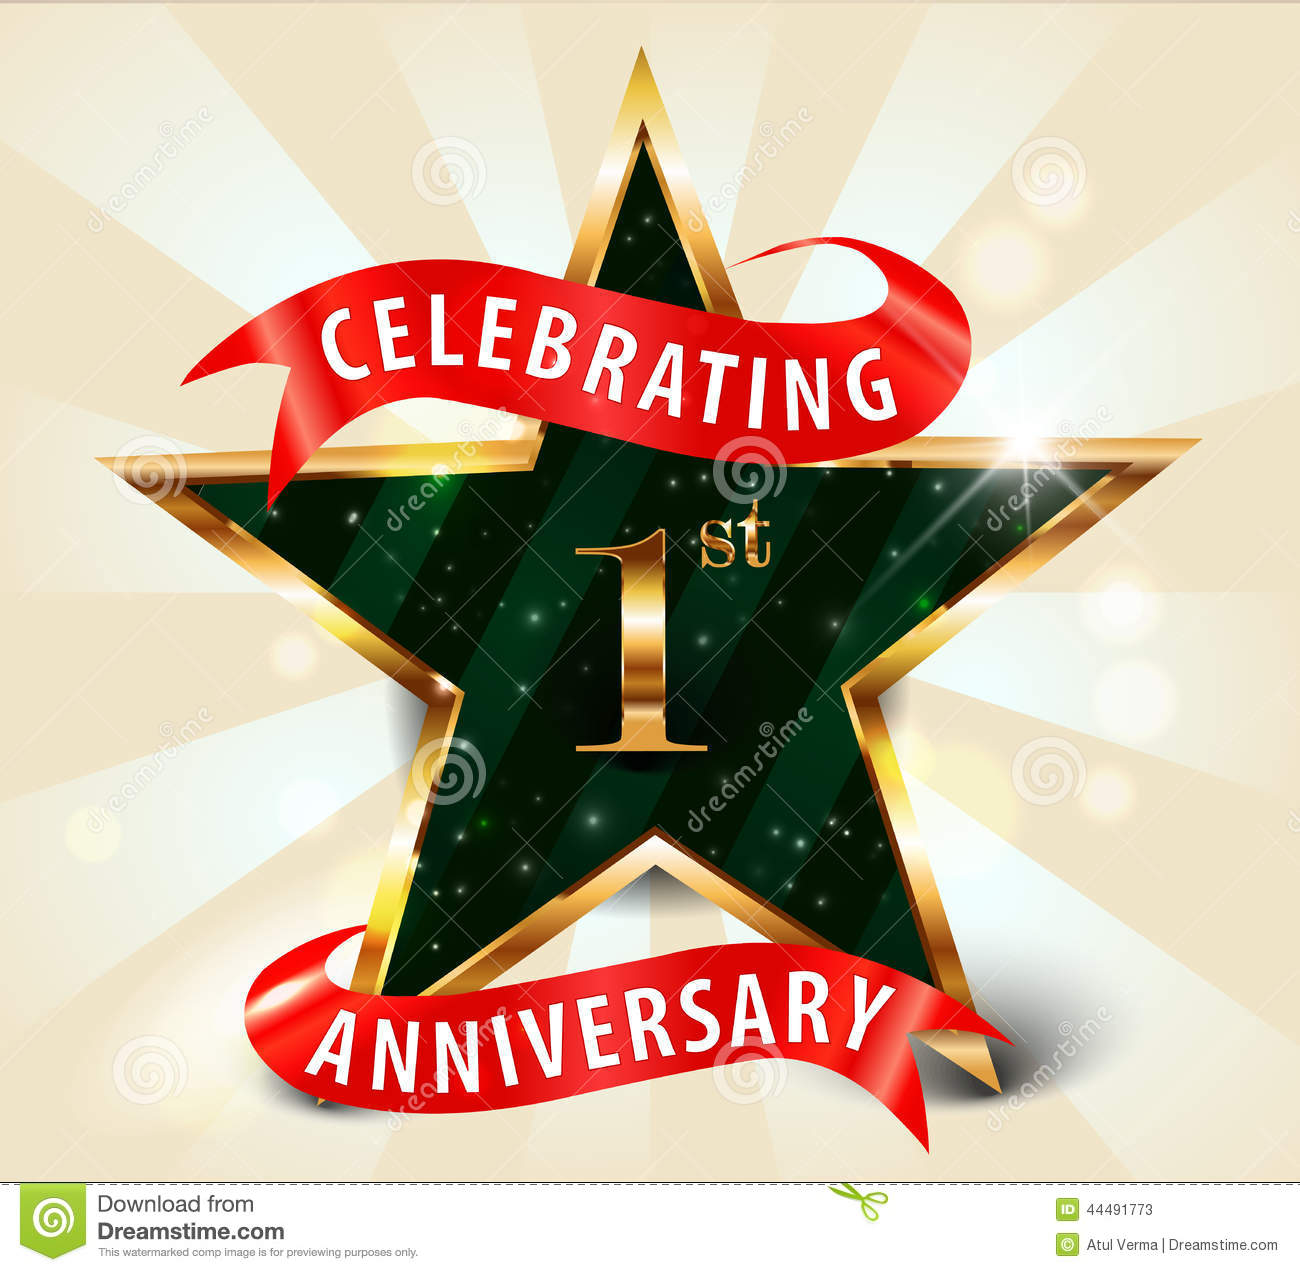 clipartfest one ebfddcbecdca. 1 year anniversary clipart